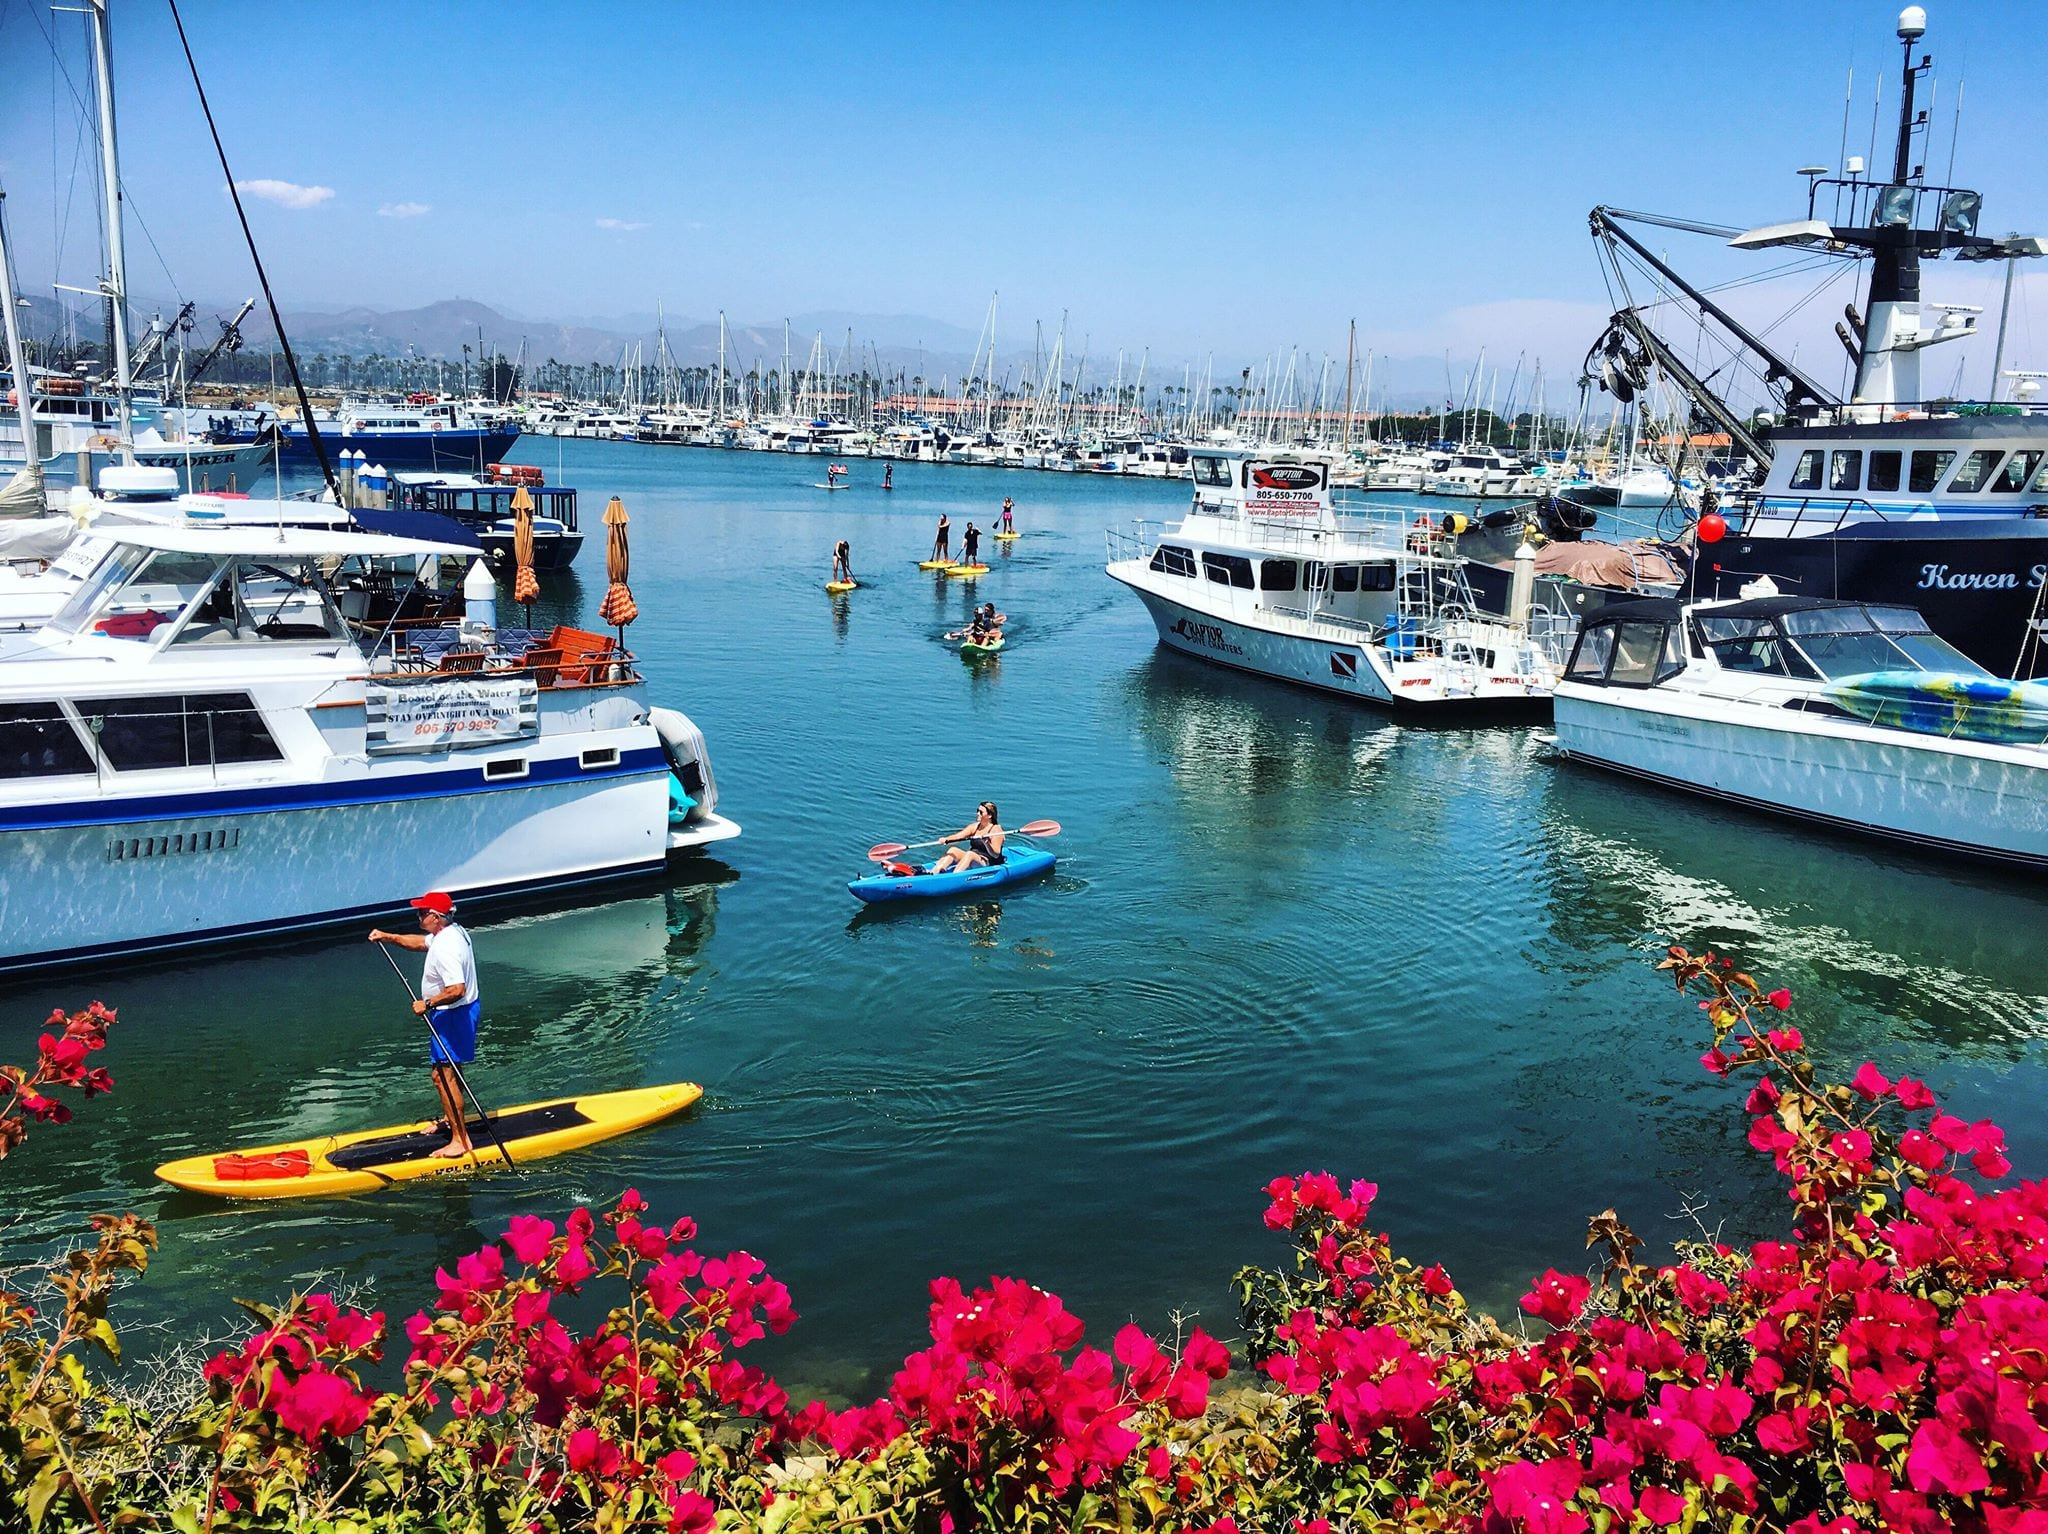 harbor on a sunny day with people on kayaks and paddle boards